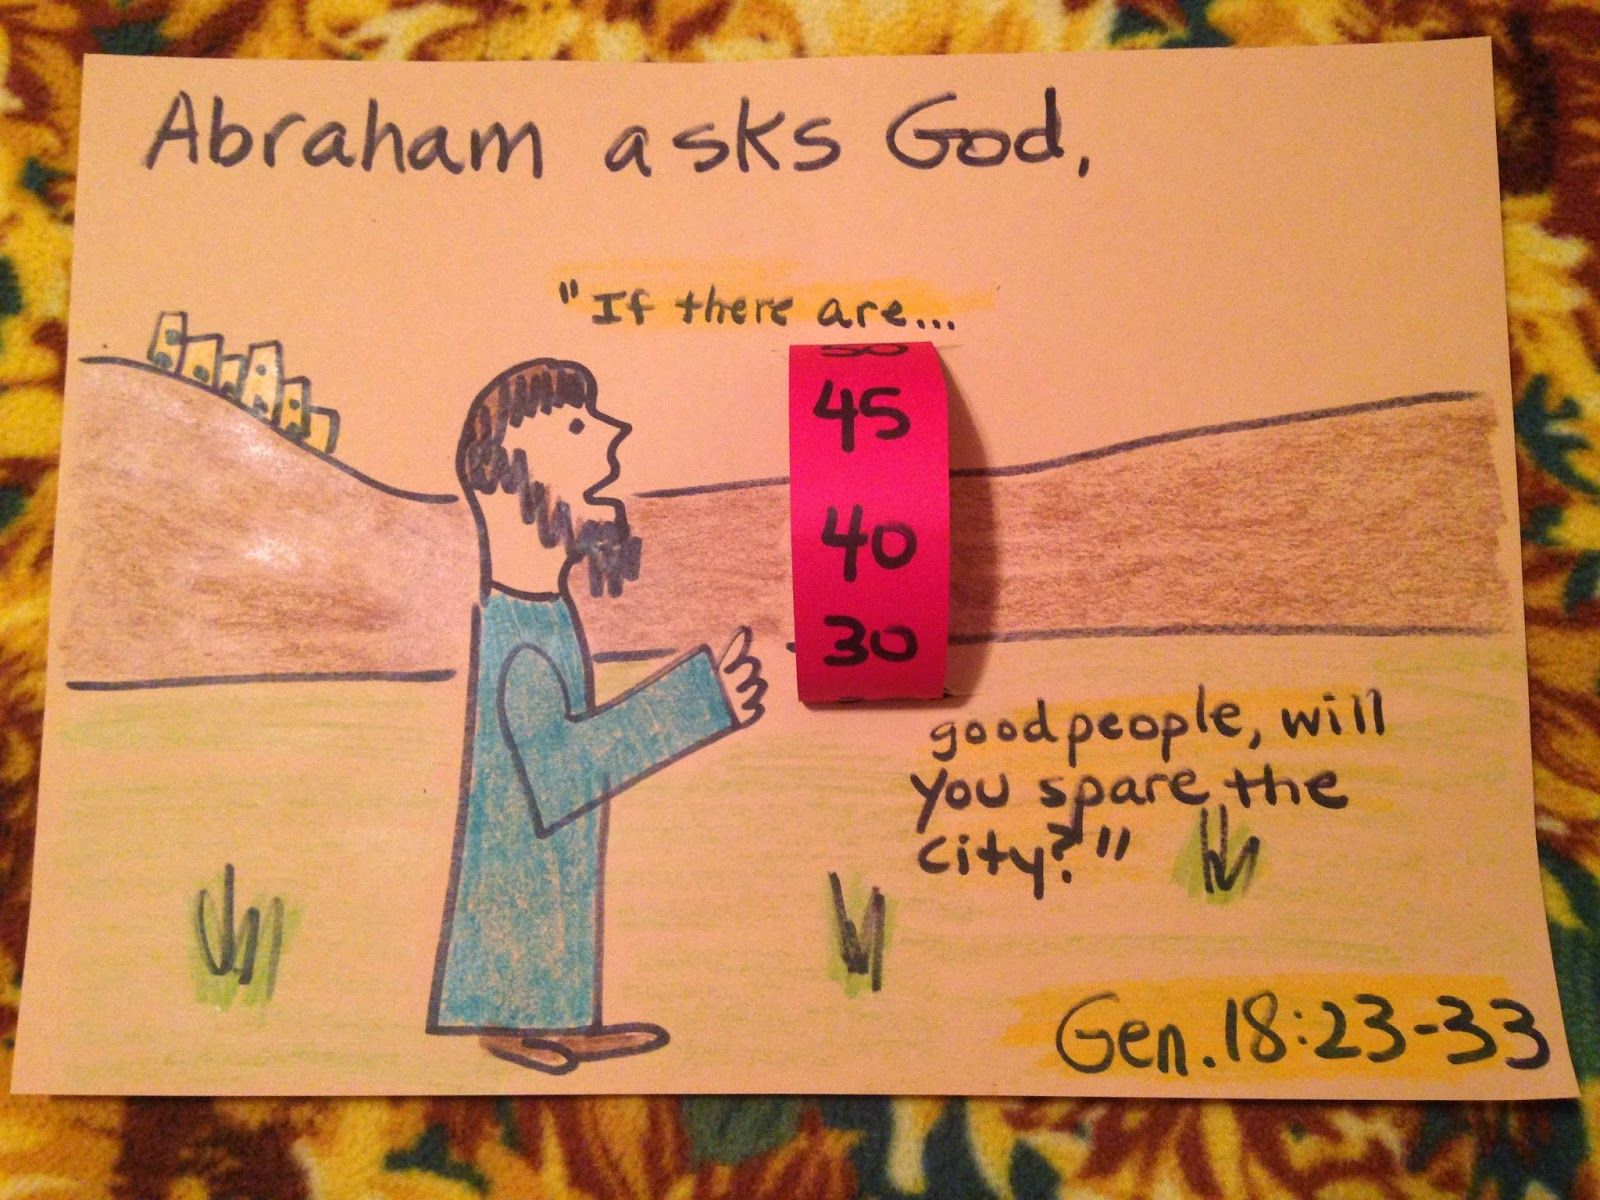 5 Lessons We Can Learn from Abraham - Bible Study